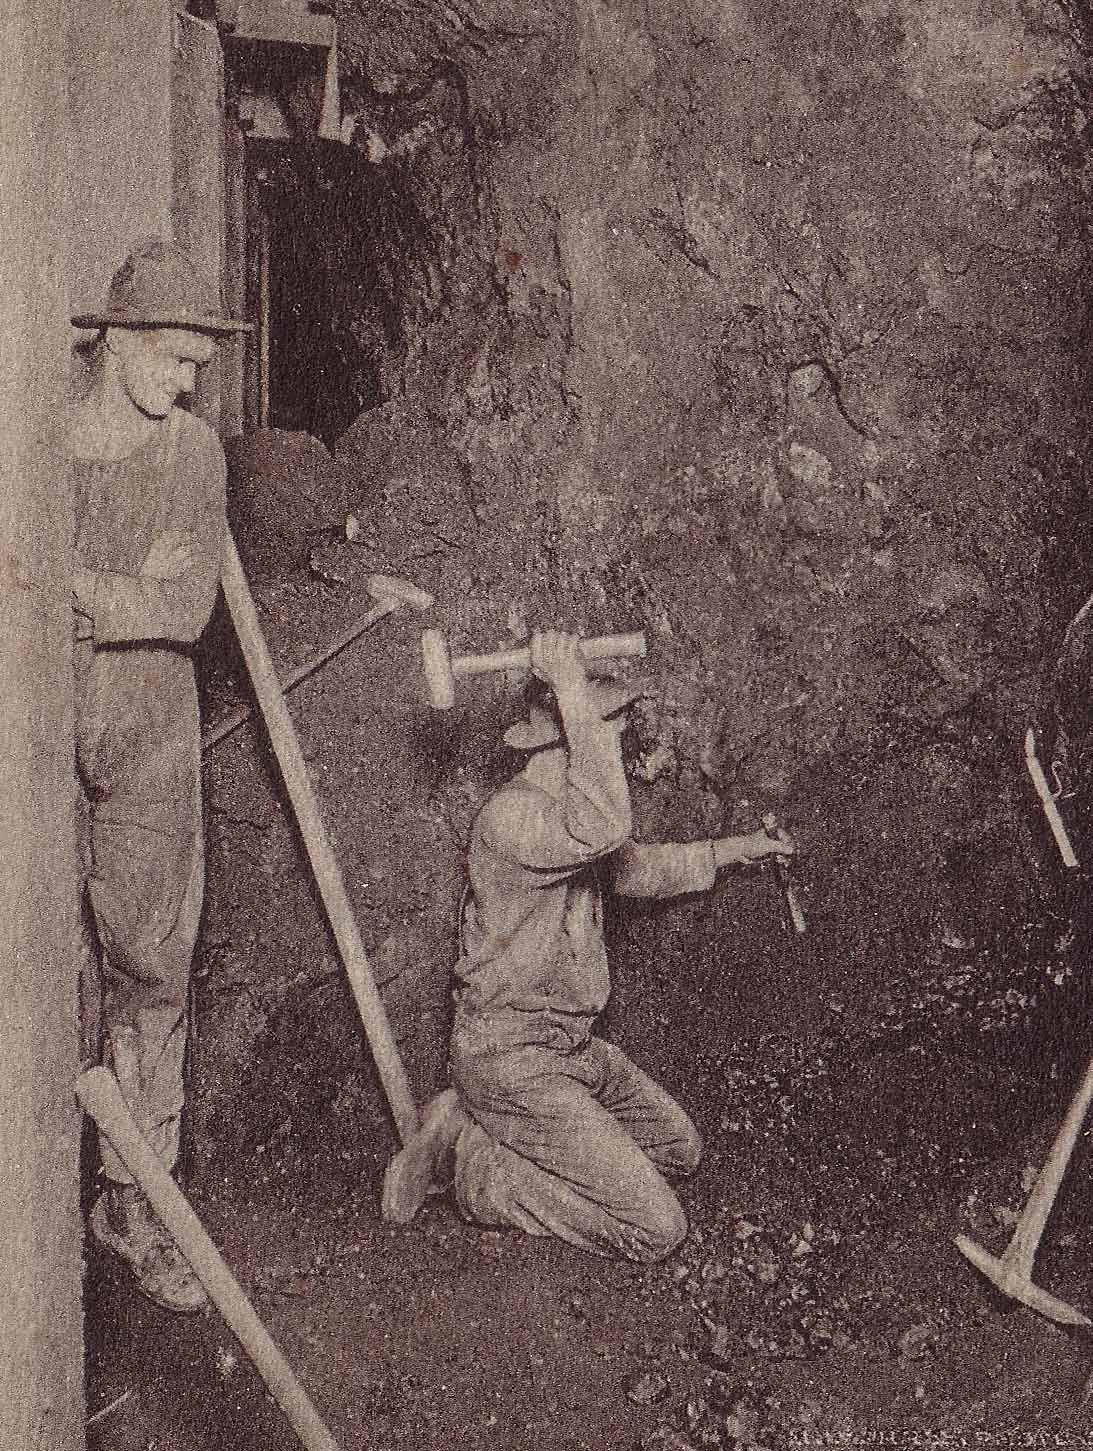 Turn of the Century - Mining for Copper